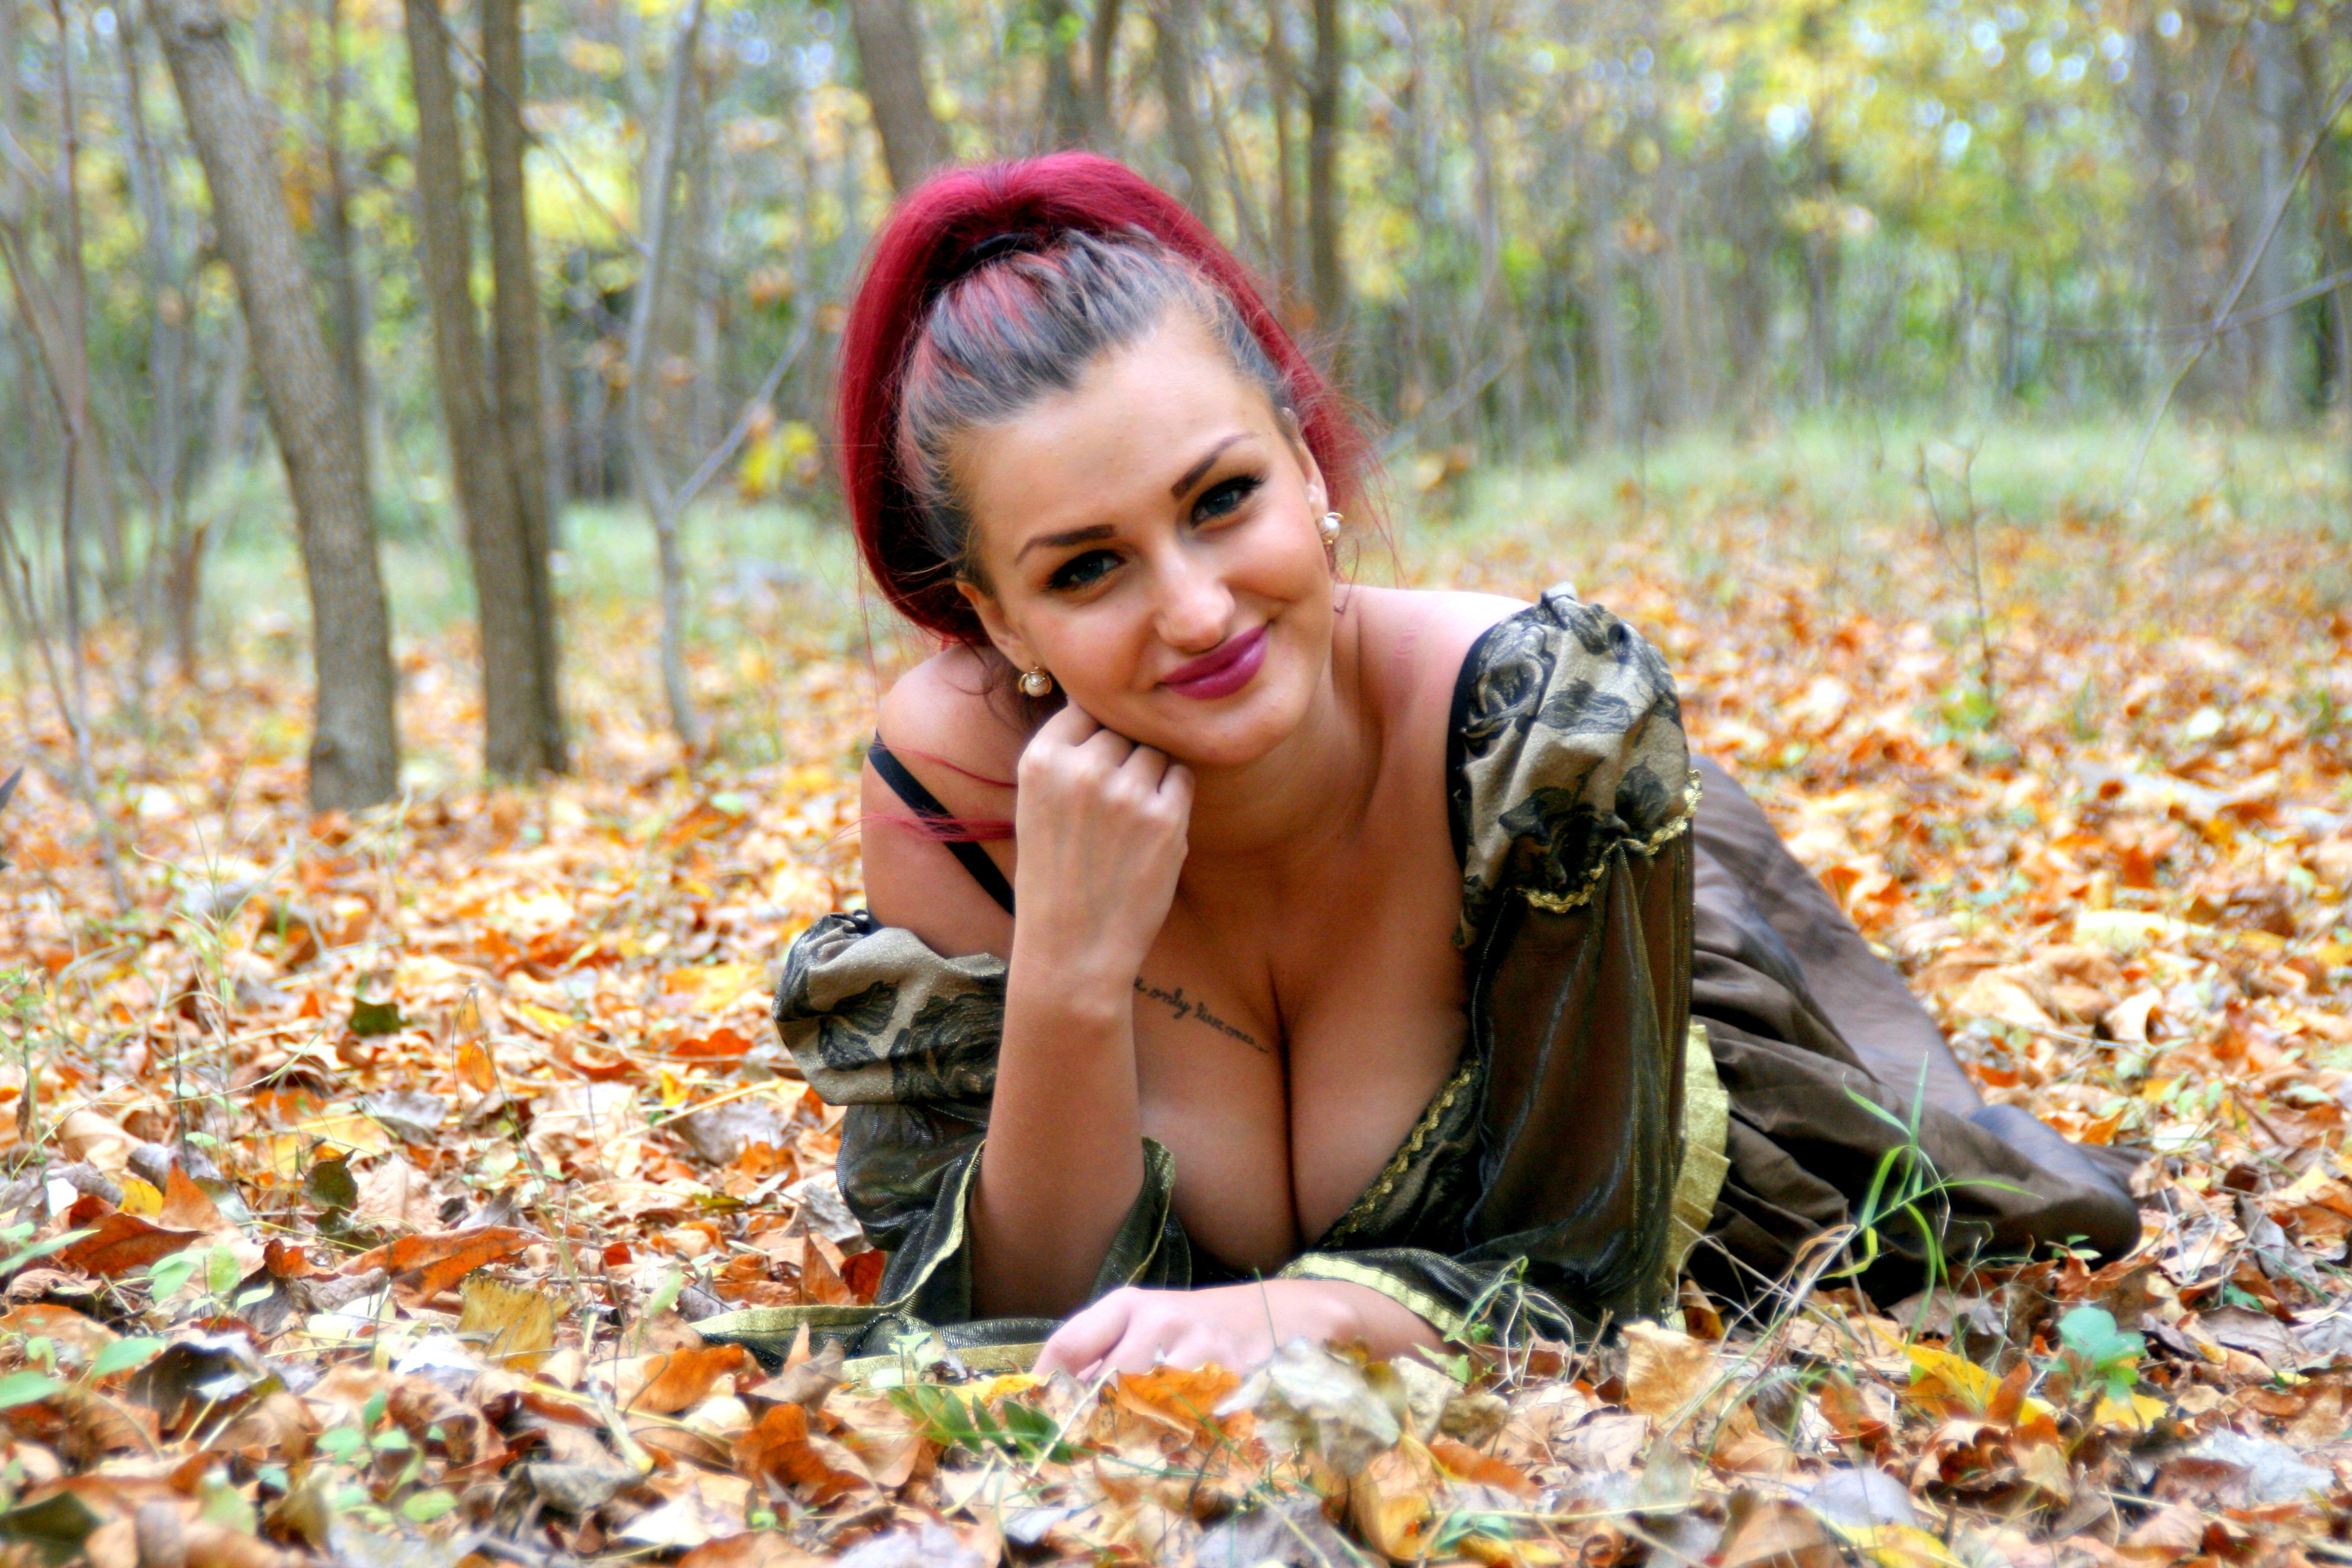 On the Ground, Smile, Smiling, Tree, Wood, HQ Photo